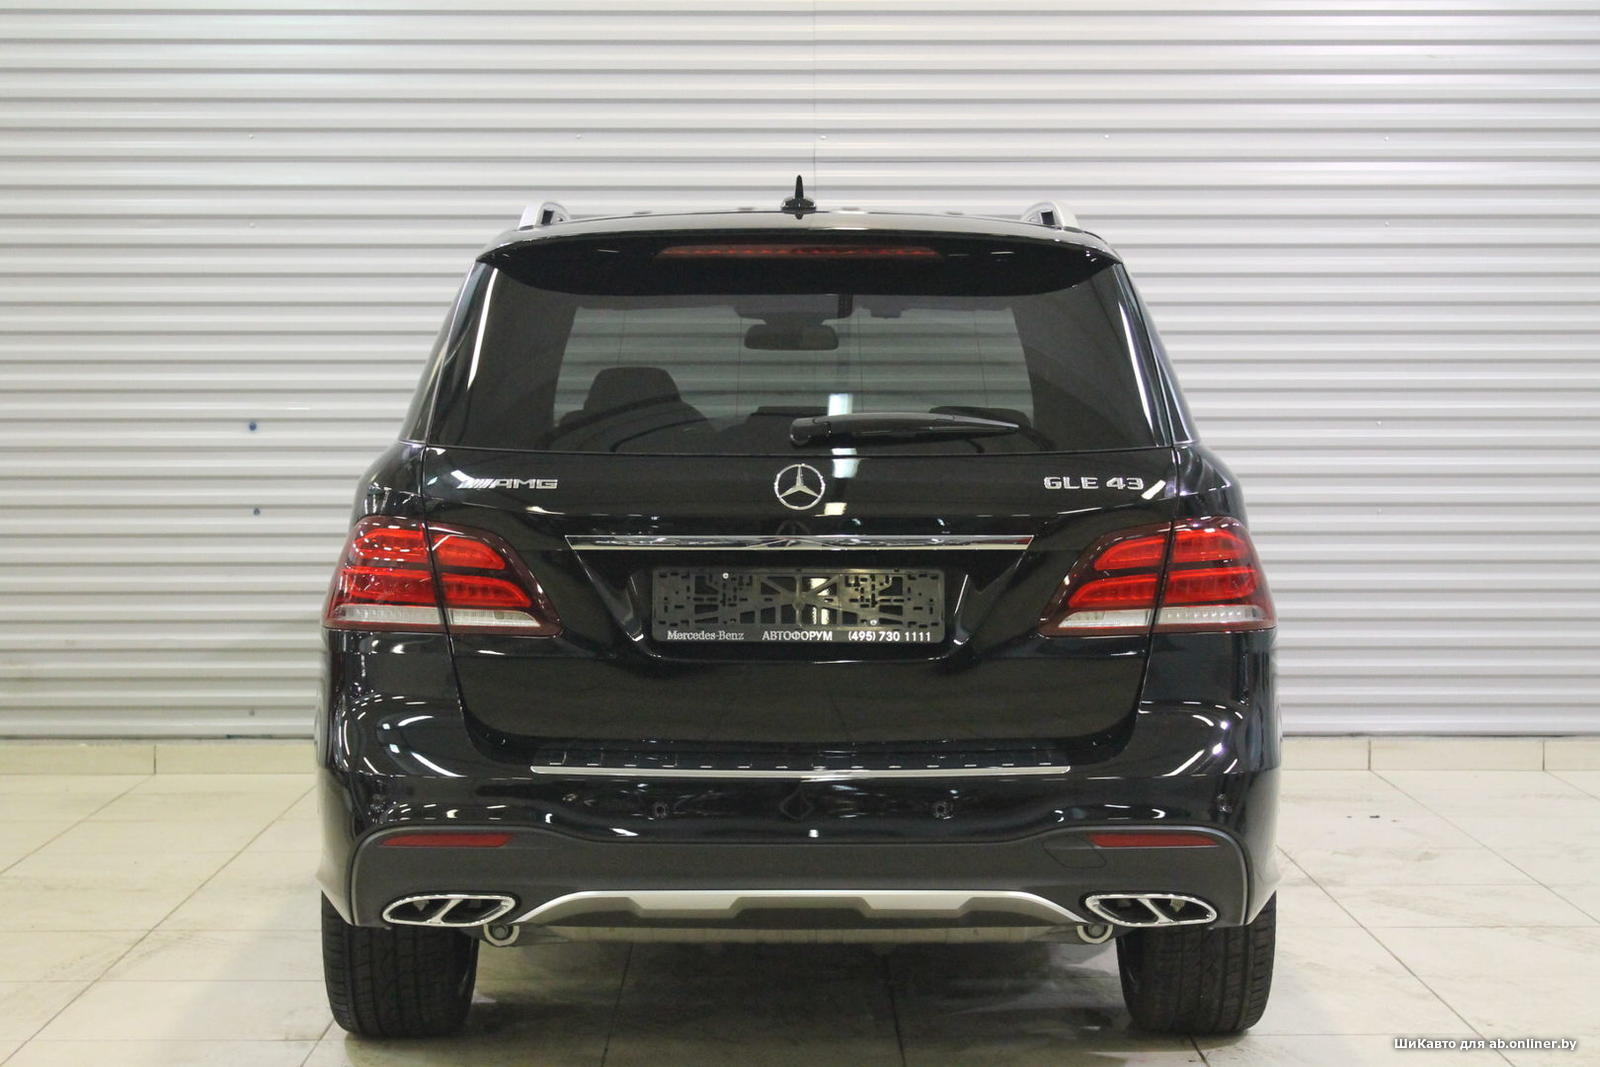 Mercedes-Benz GLE450 AMG 43AMG 4MATIC